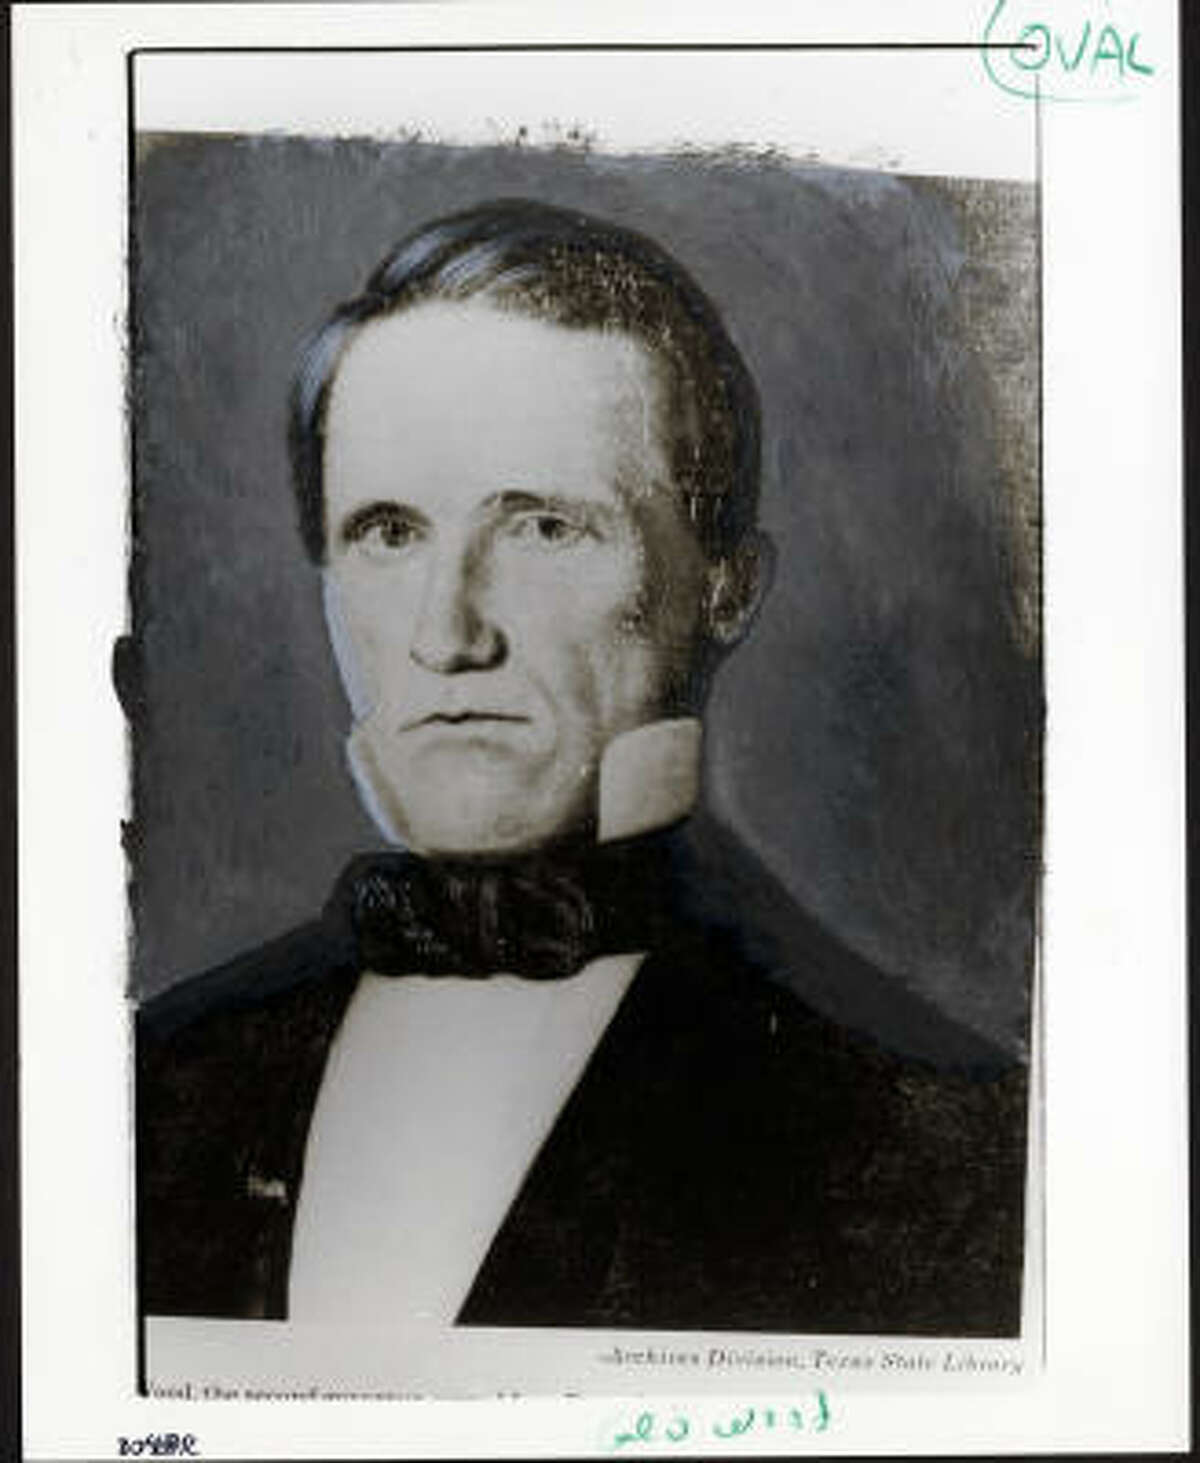 Gov. George T. Wood did not wear socks to his inauguration in 1847, but then he apparently chose not to wear them during his entire term. He was voted out in two years.